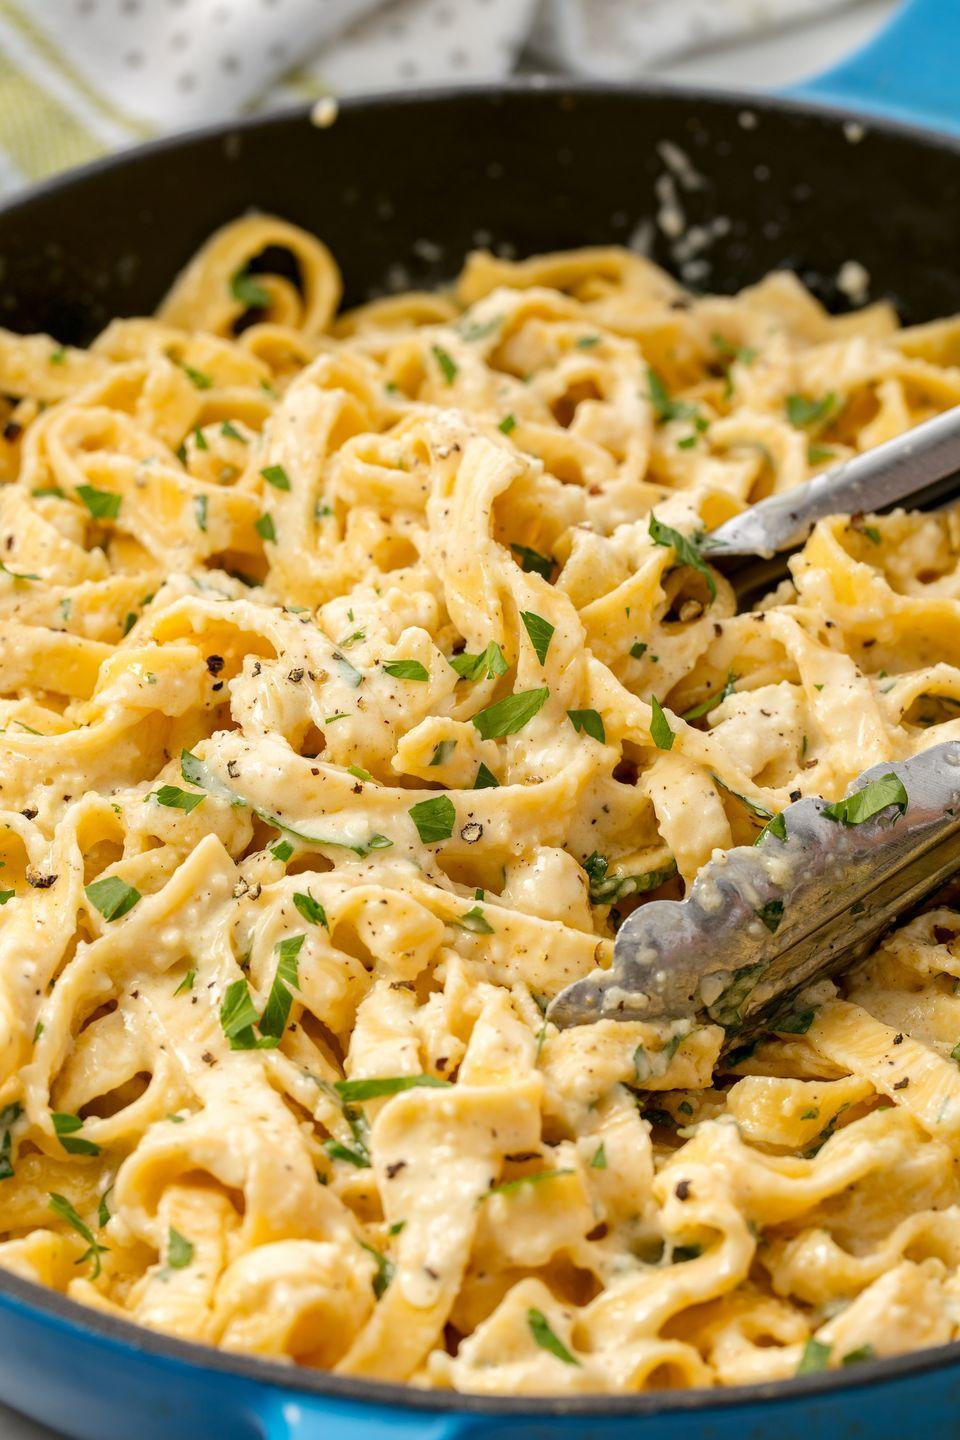 "<p>A staple recipe that you should know like the back of your hand.</p><p>Get the recipe from <a href=""https://www.delish.com/cooking/recipe-ideas/recipes/a55312/best-homemade-fettuccine-alfredo-recipe/"" rel=""nofollow noopener"" target=""_blank"" data-ylk=""slk:Delish"" class=""link rapid-noclick-resp"">Delish</a>.</p>"